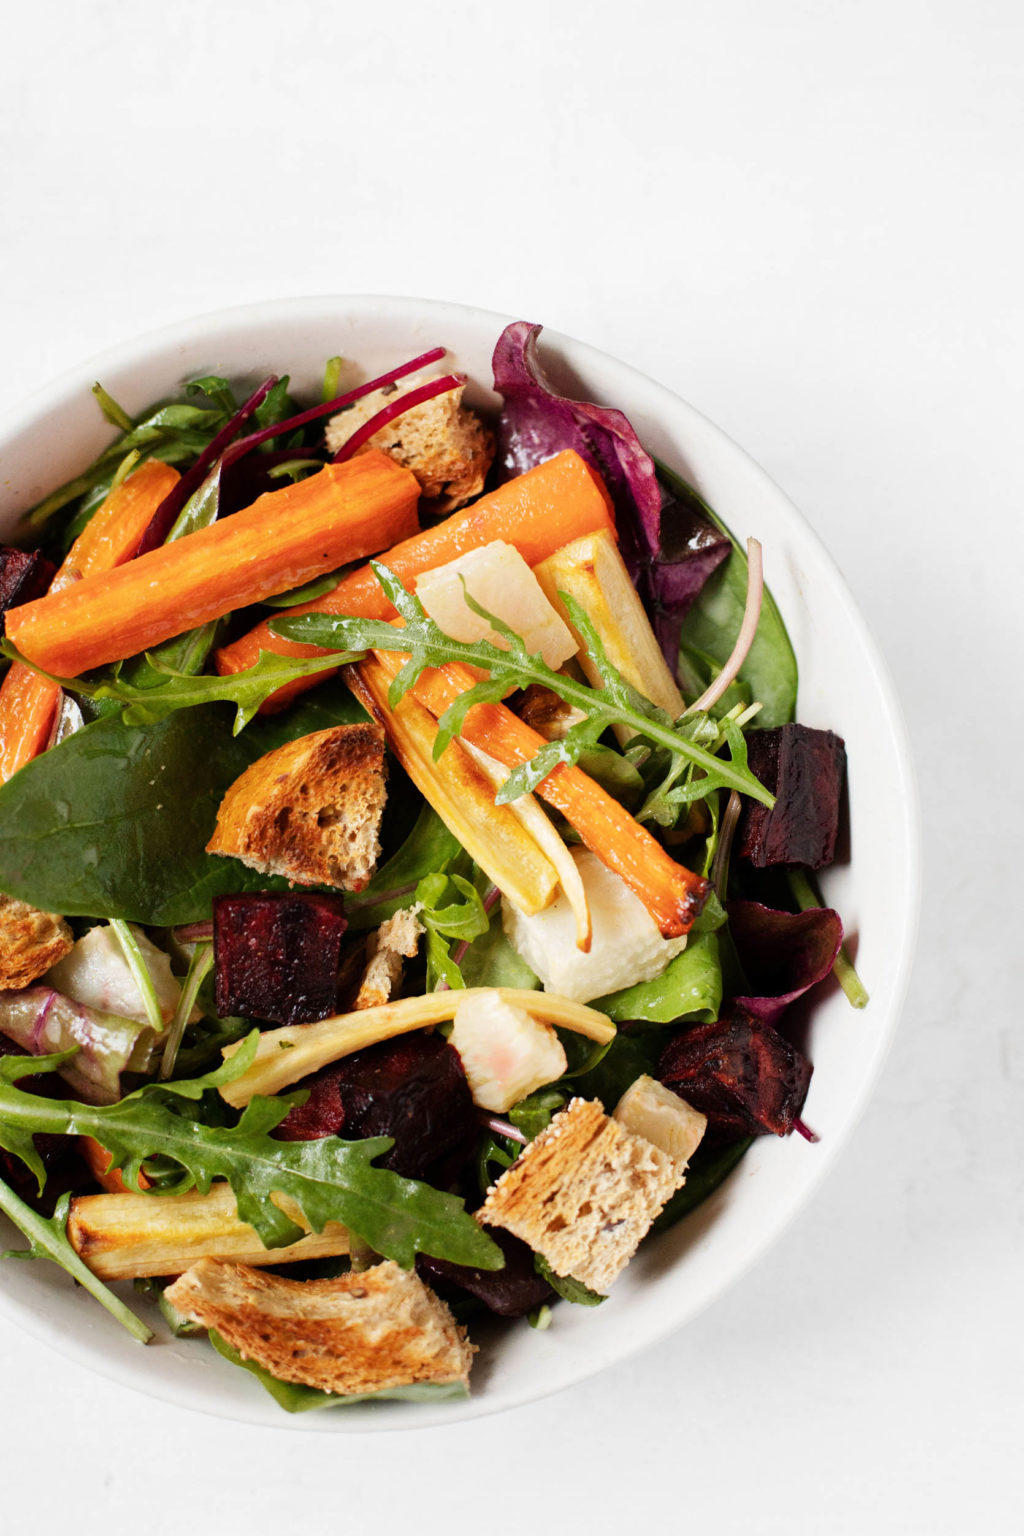 A round bowl containing the colorful ingredients of a wintertime salad, including greens, carrots, parsnips, and beets.